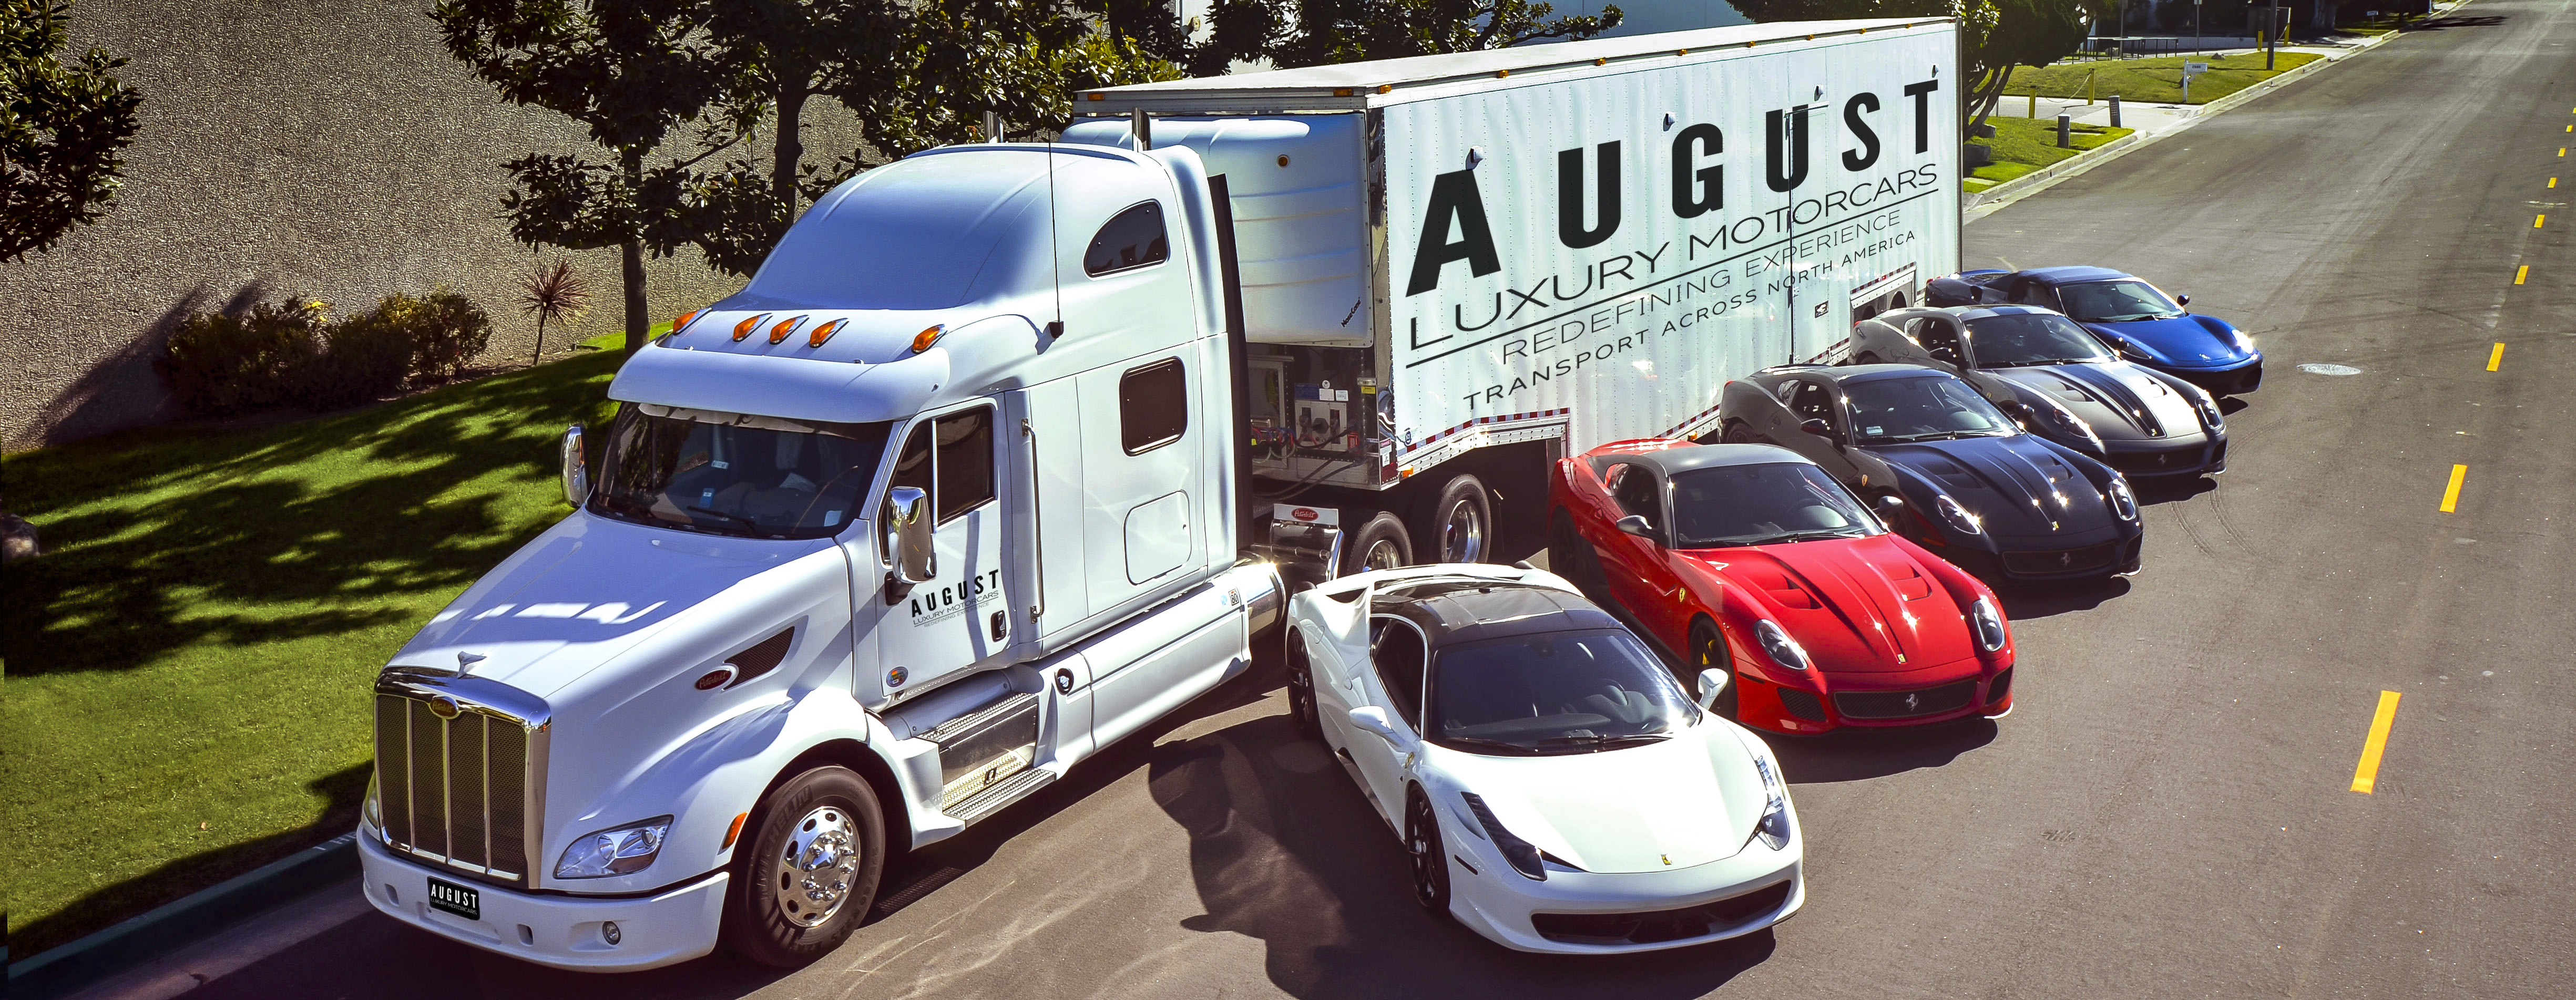 Shipping Solutions with August Luxury Motorcars